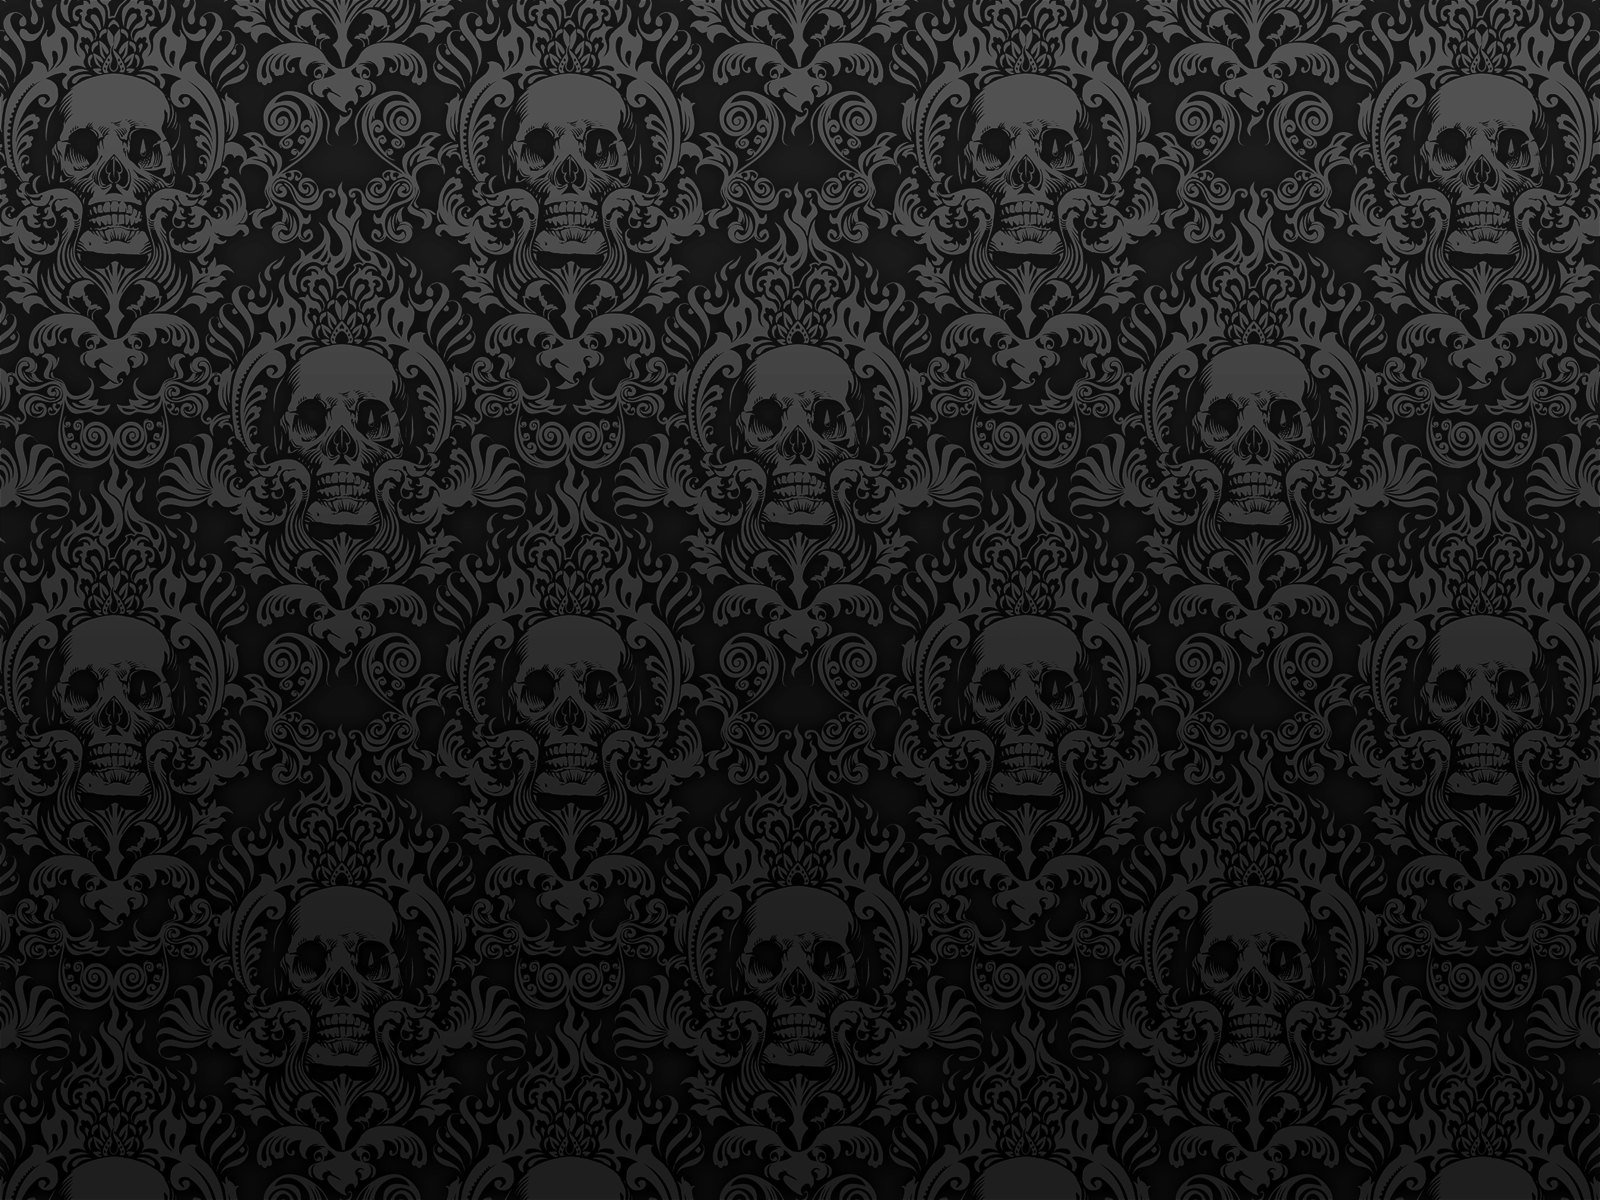 black and white damask wallpaper 4 high resolution wallpaper